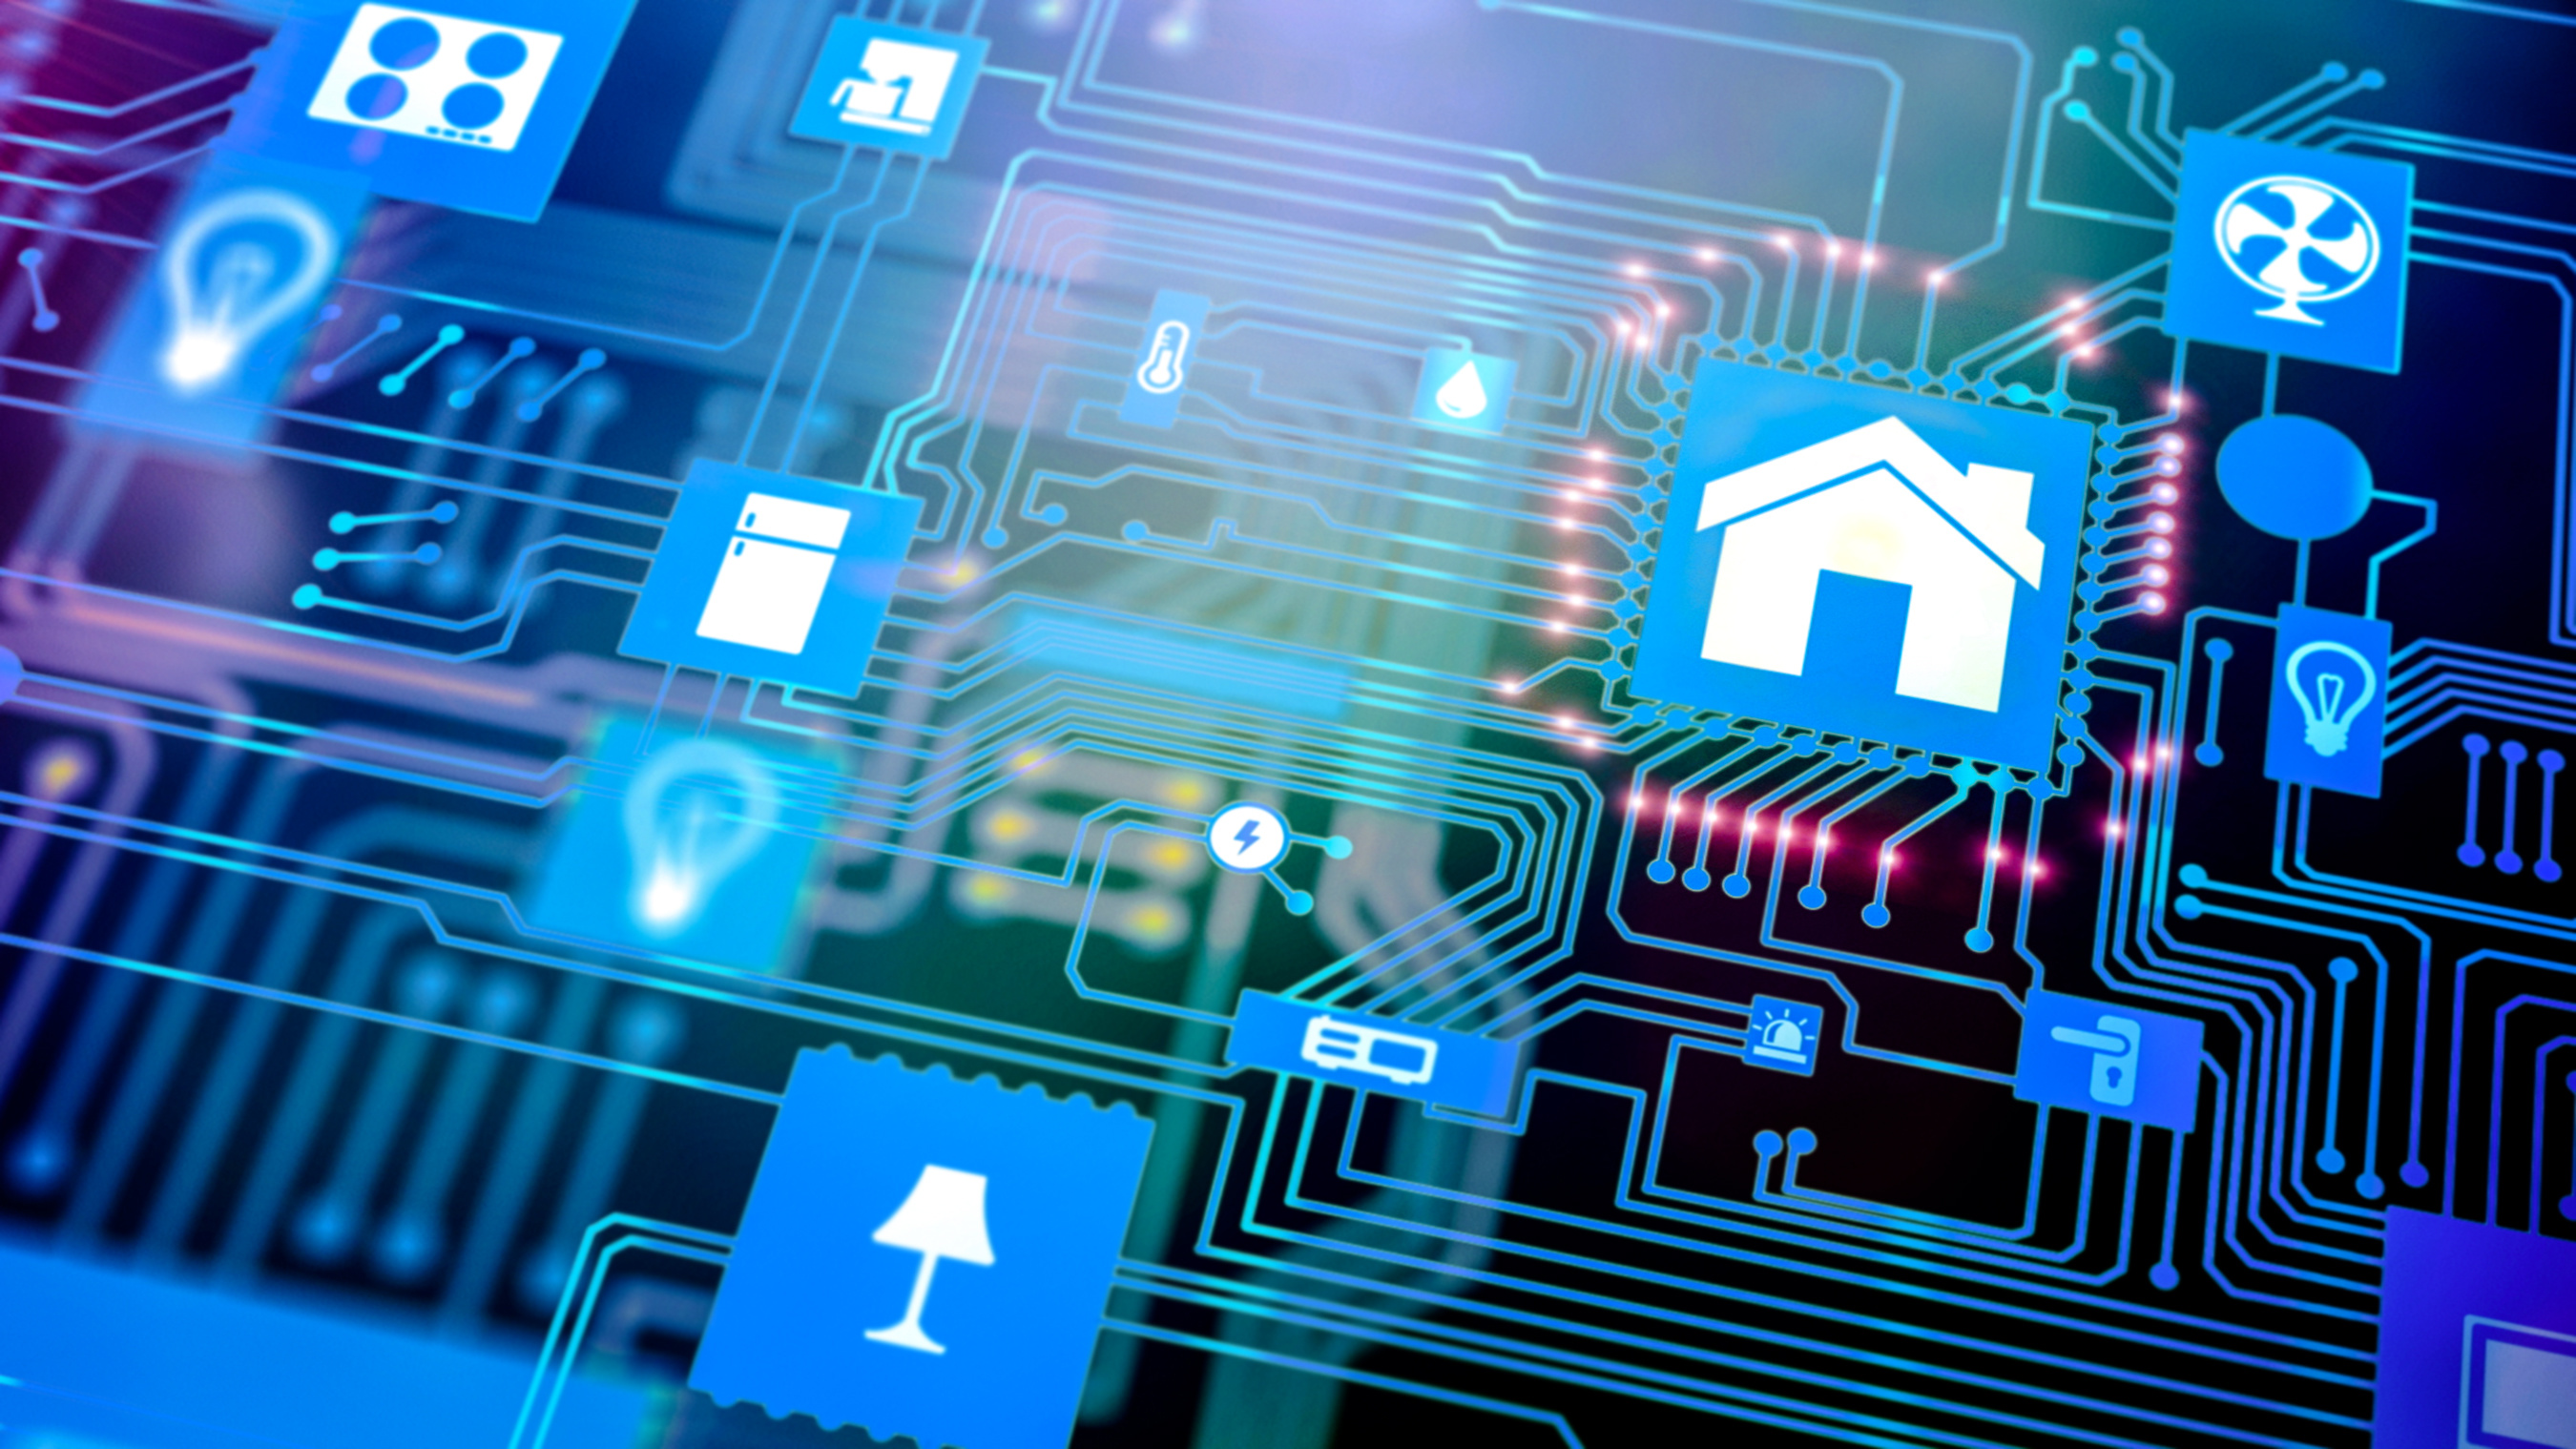 7 Innovative Home Automation Ideas: The Future of Smart Homes